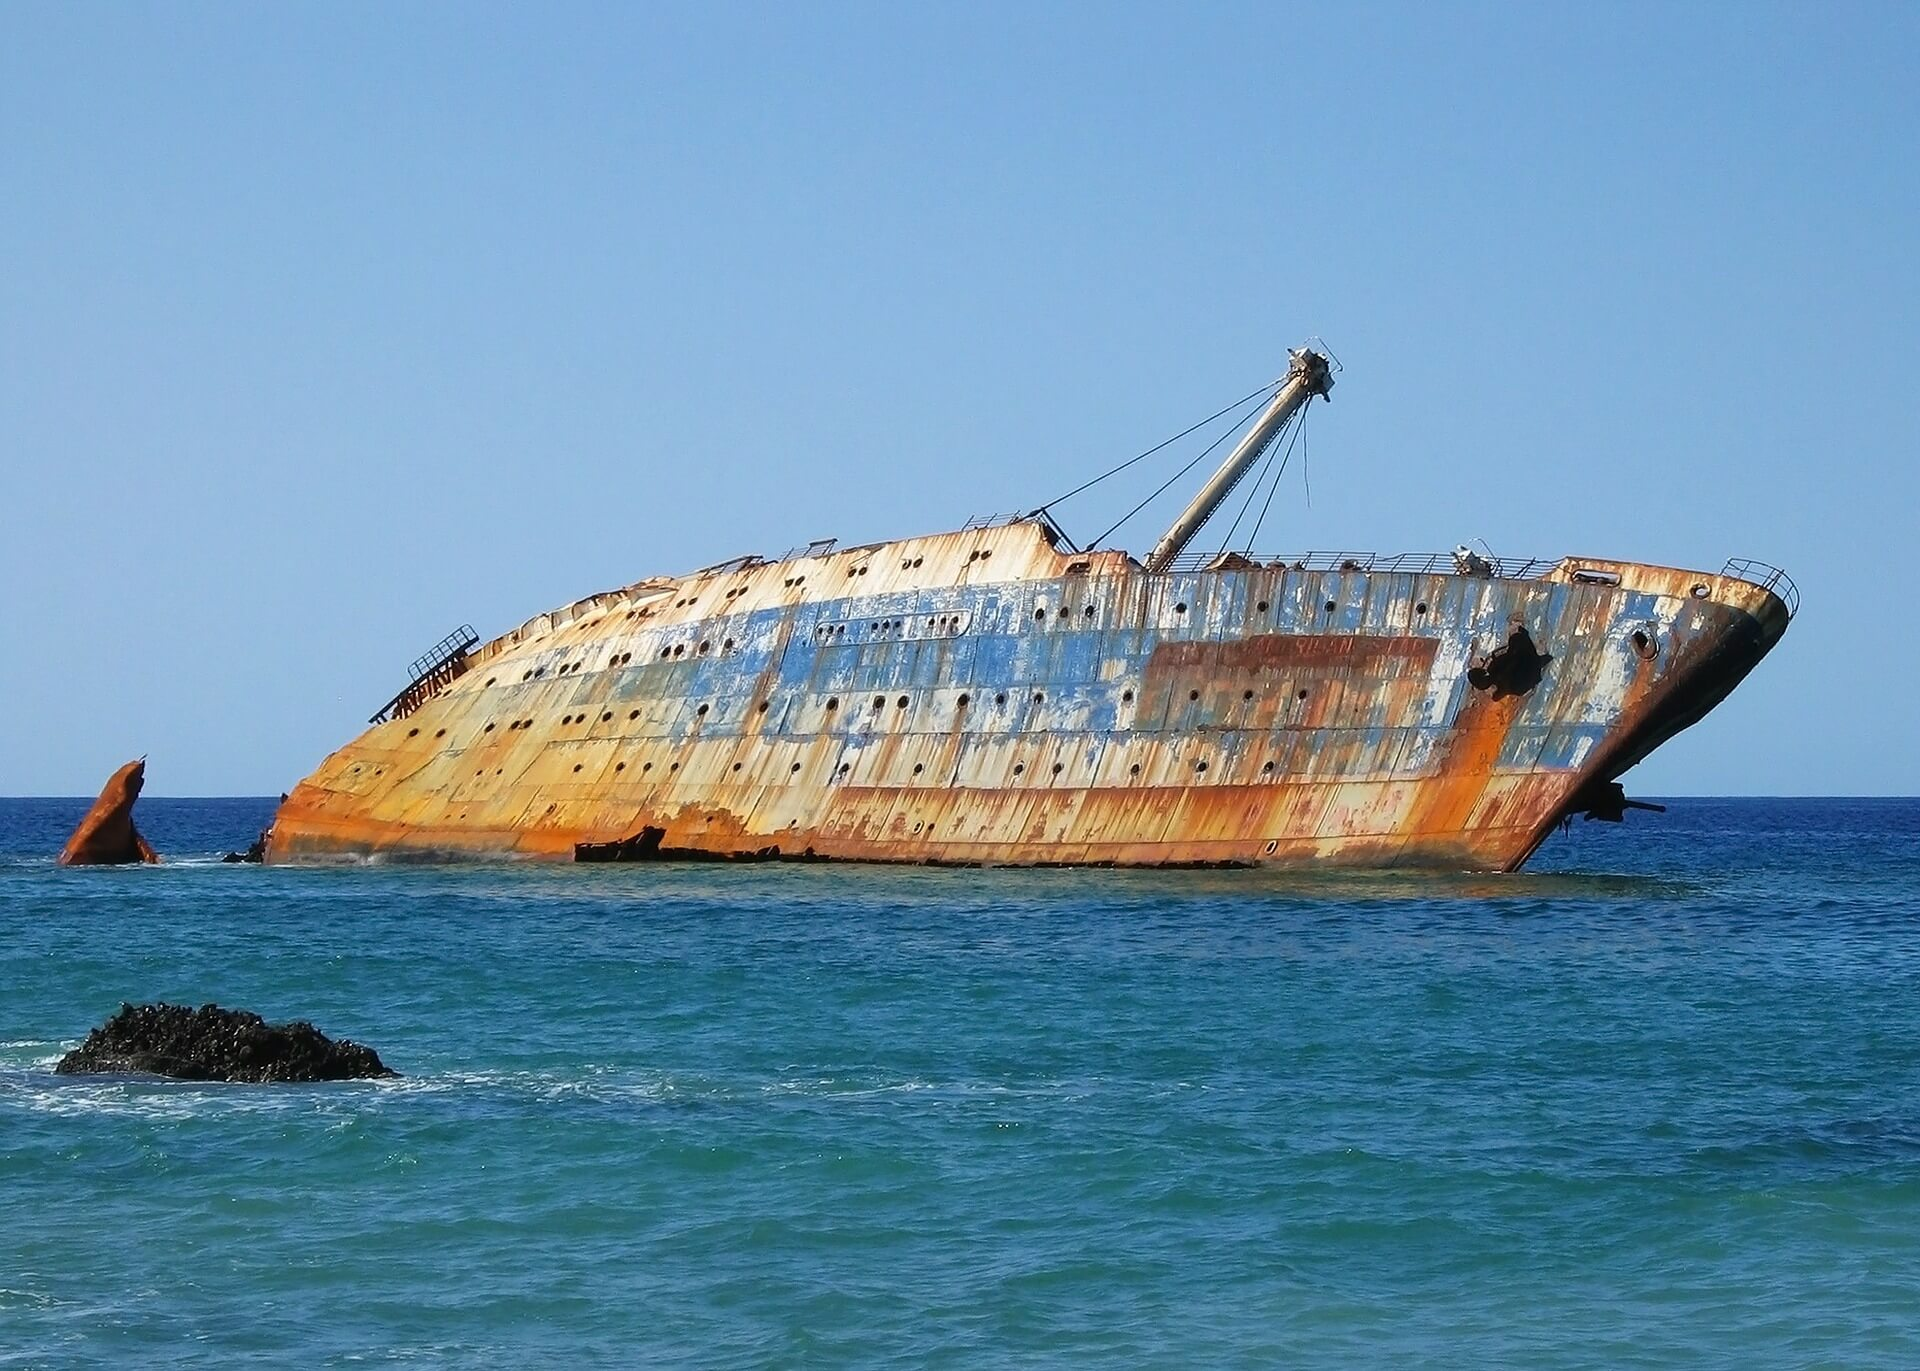 Treasures from the abyss: 5 shipwrecks to dive for - Born2Invest